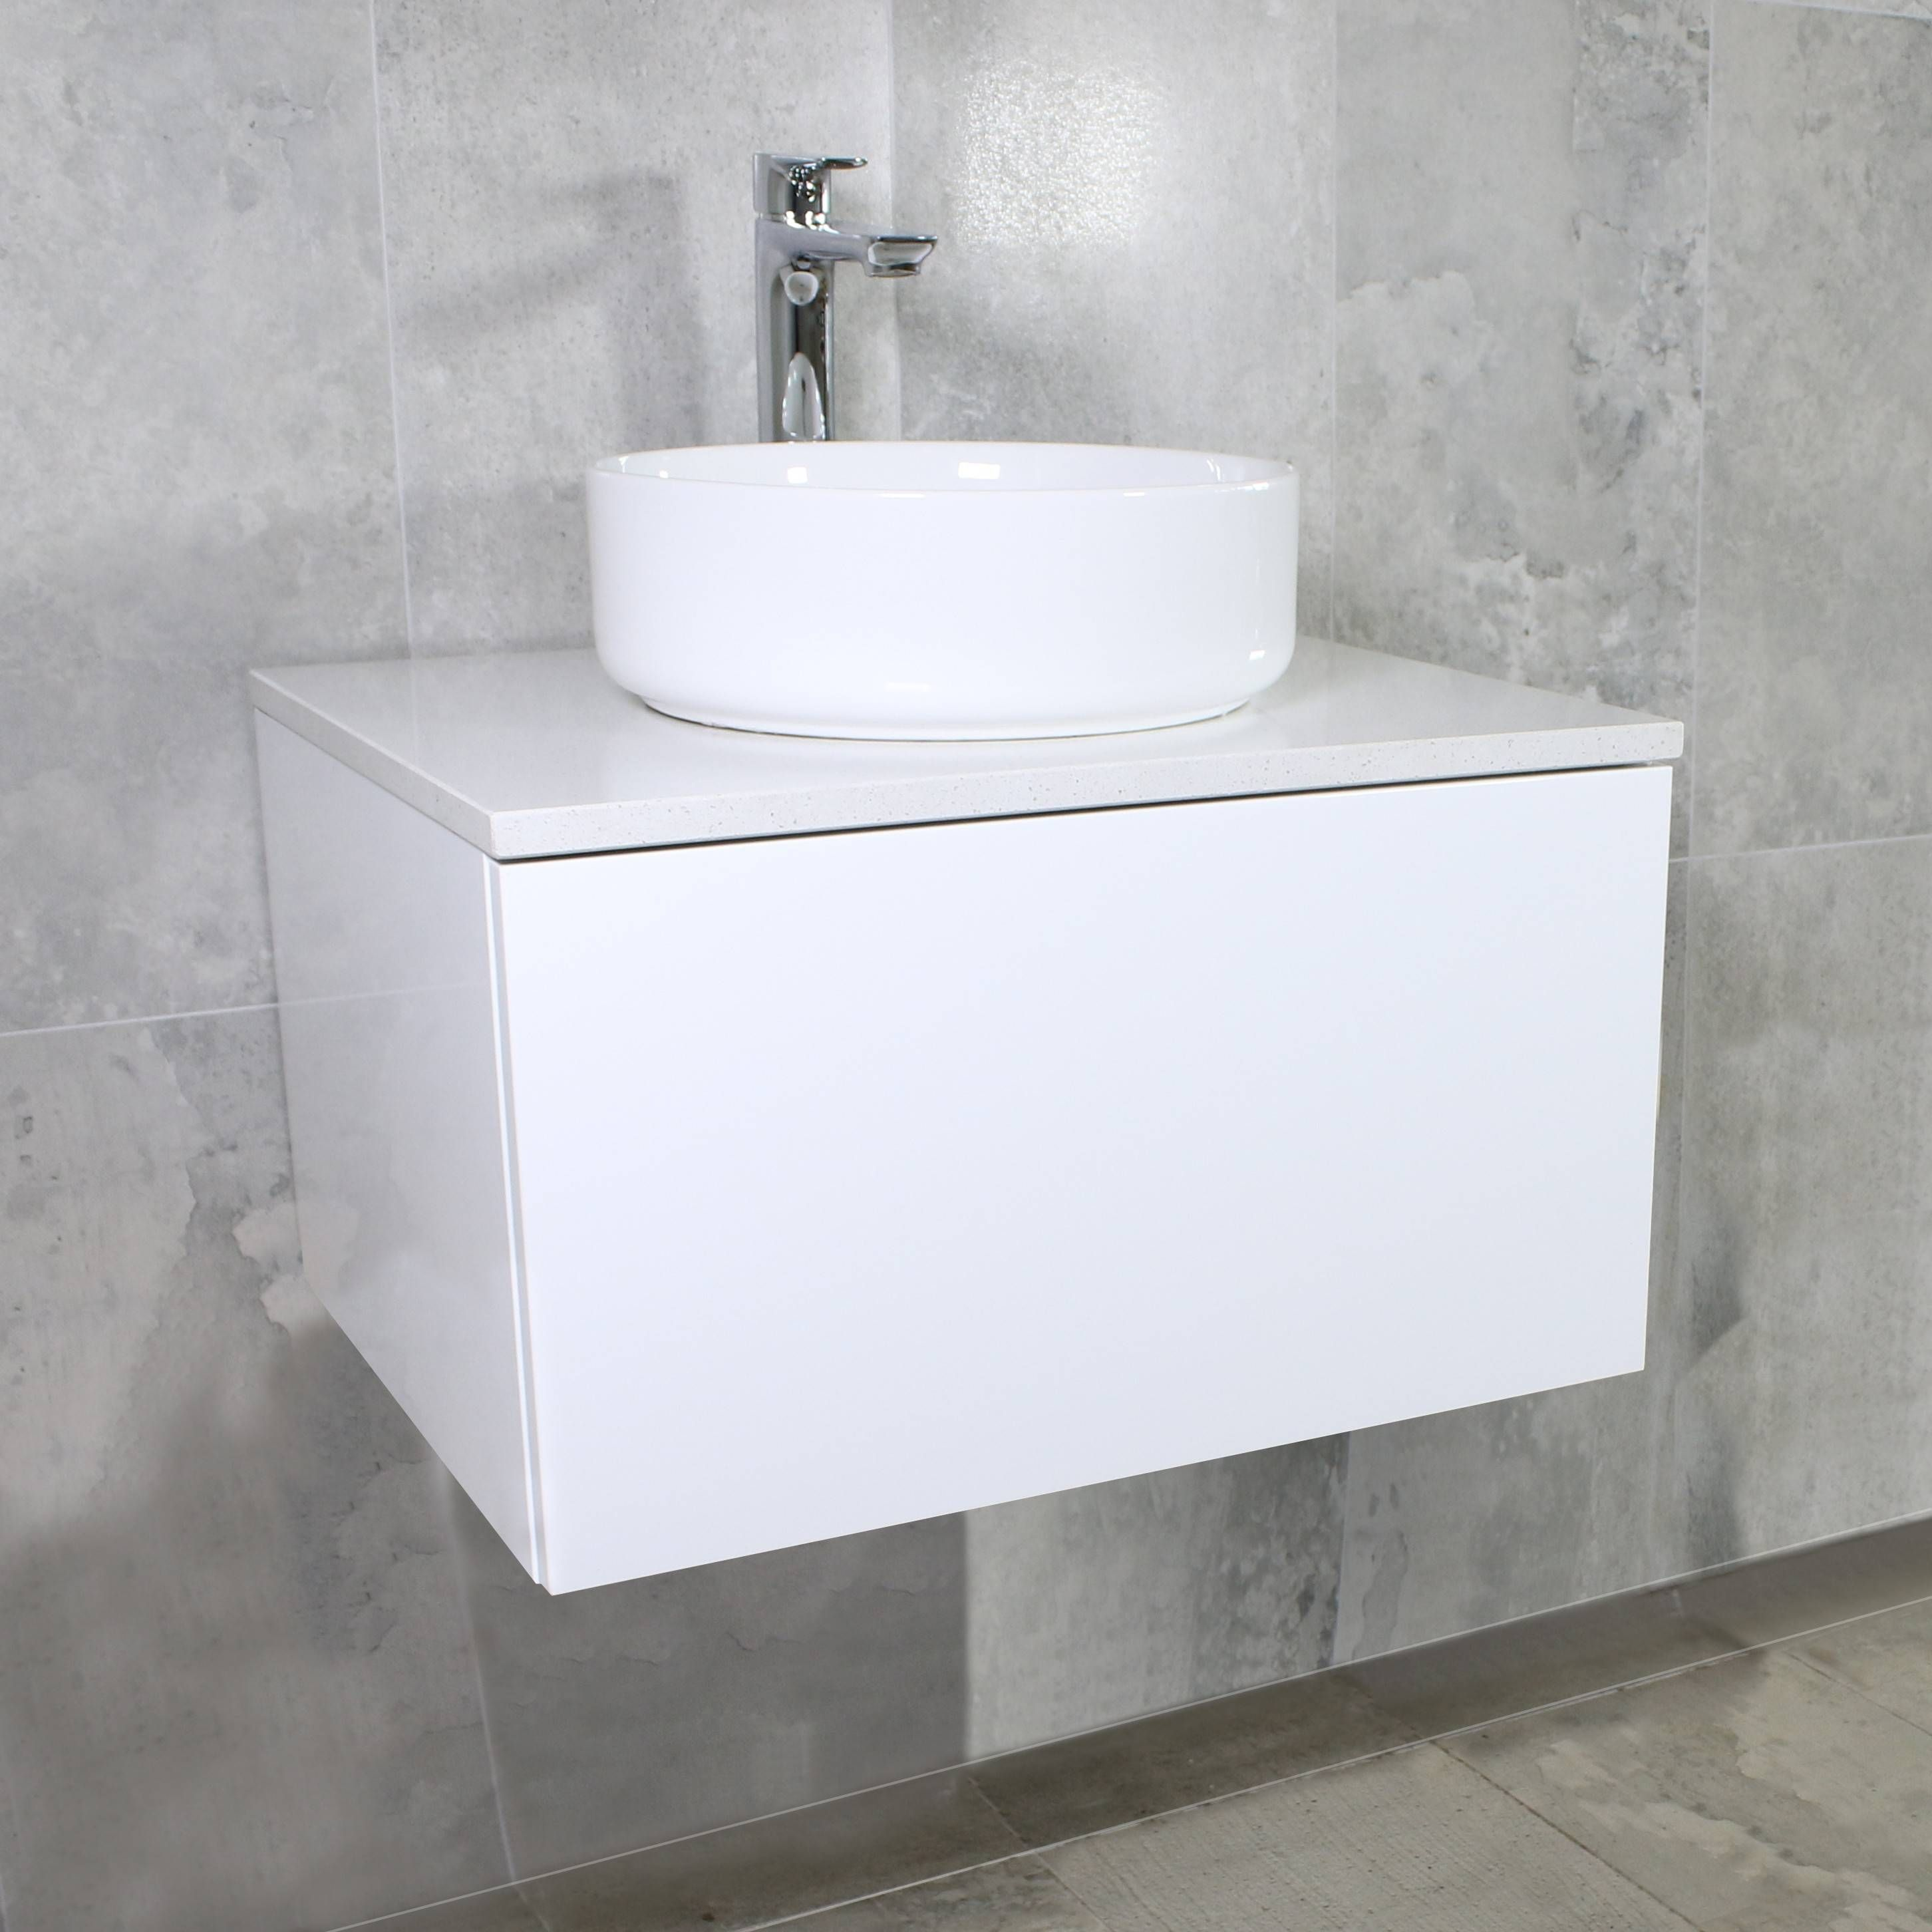 600mm Bathroom Vanity New Eden Matte White Wall Mount Vanity